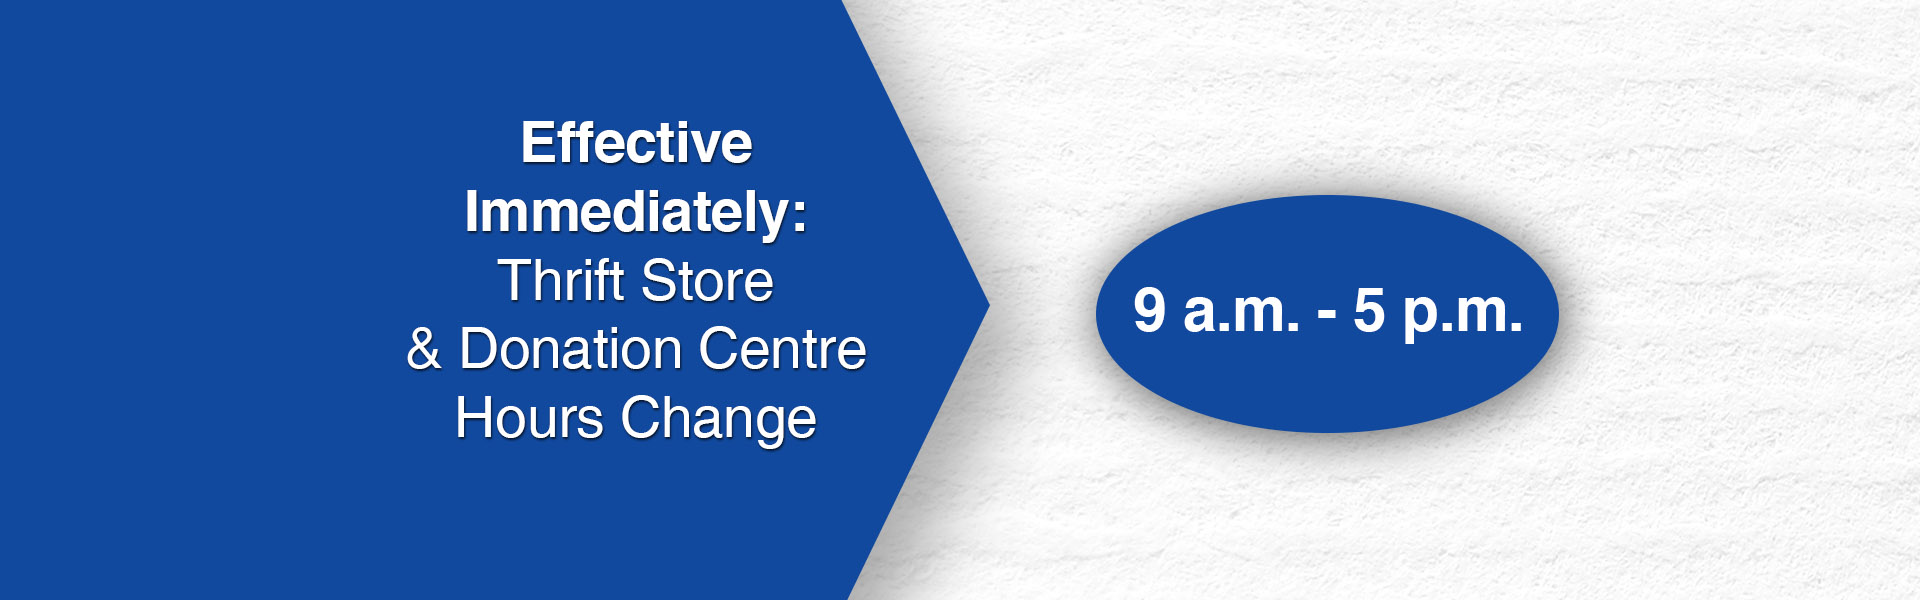 Change to Operating Hours of Goodwill Thrift Store and Donation Centres – Effective March 17, 2020